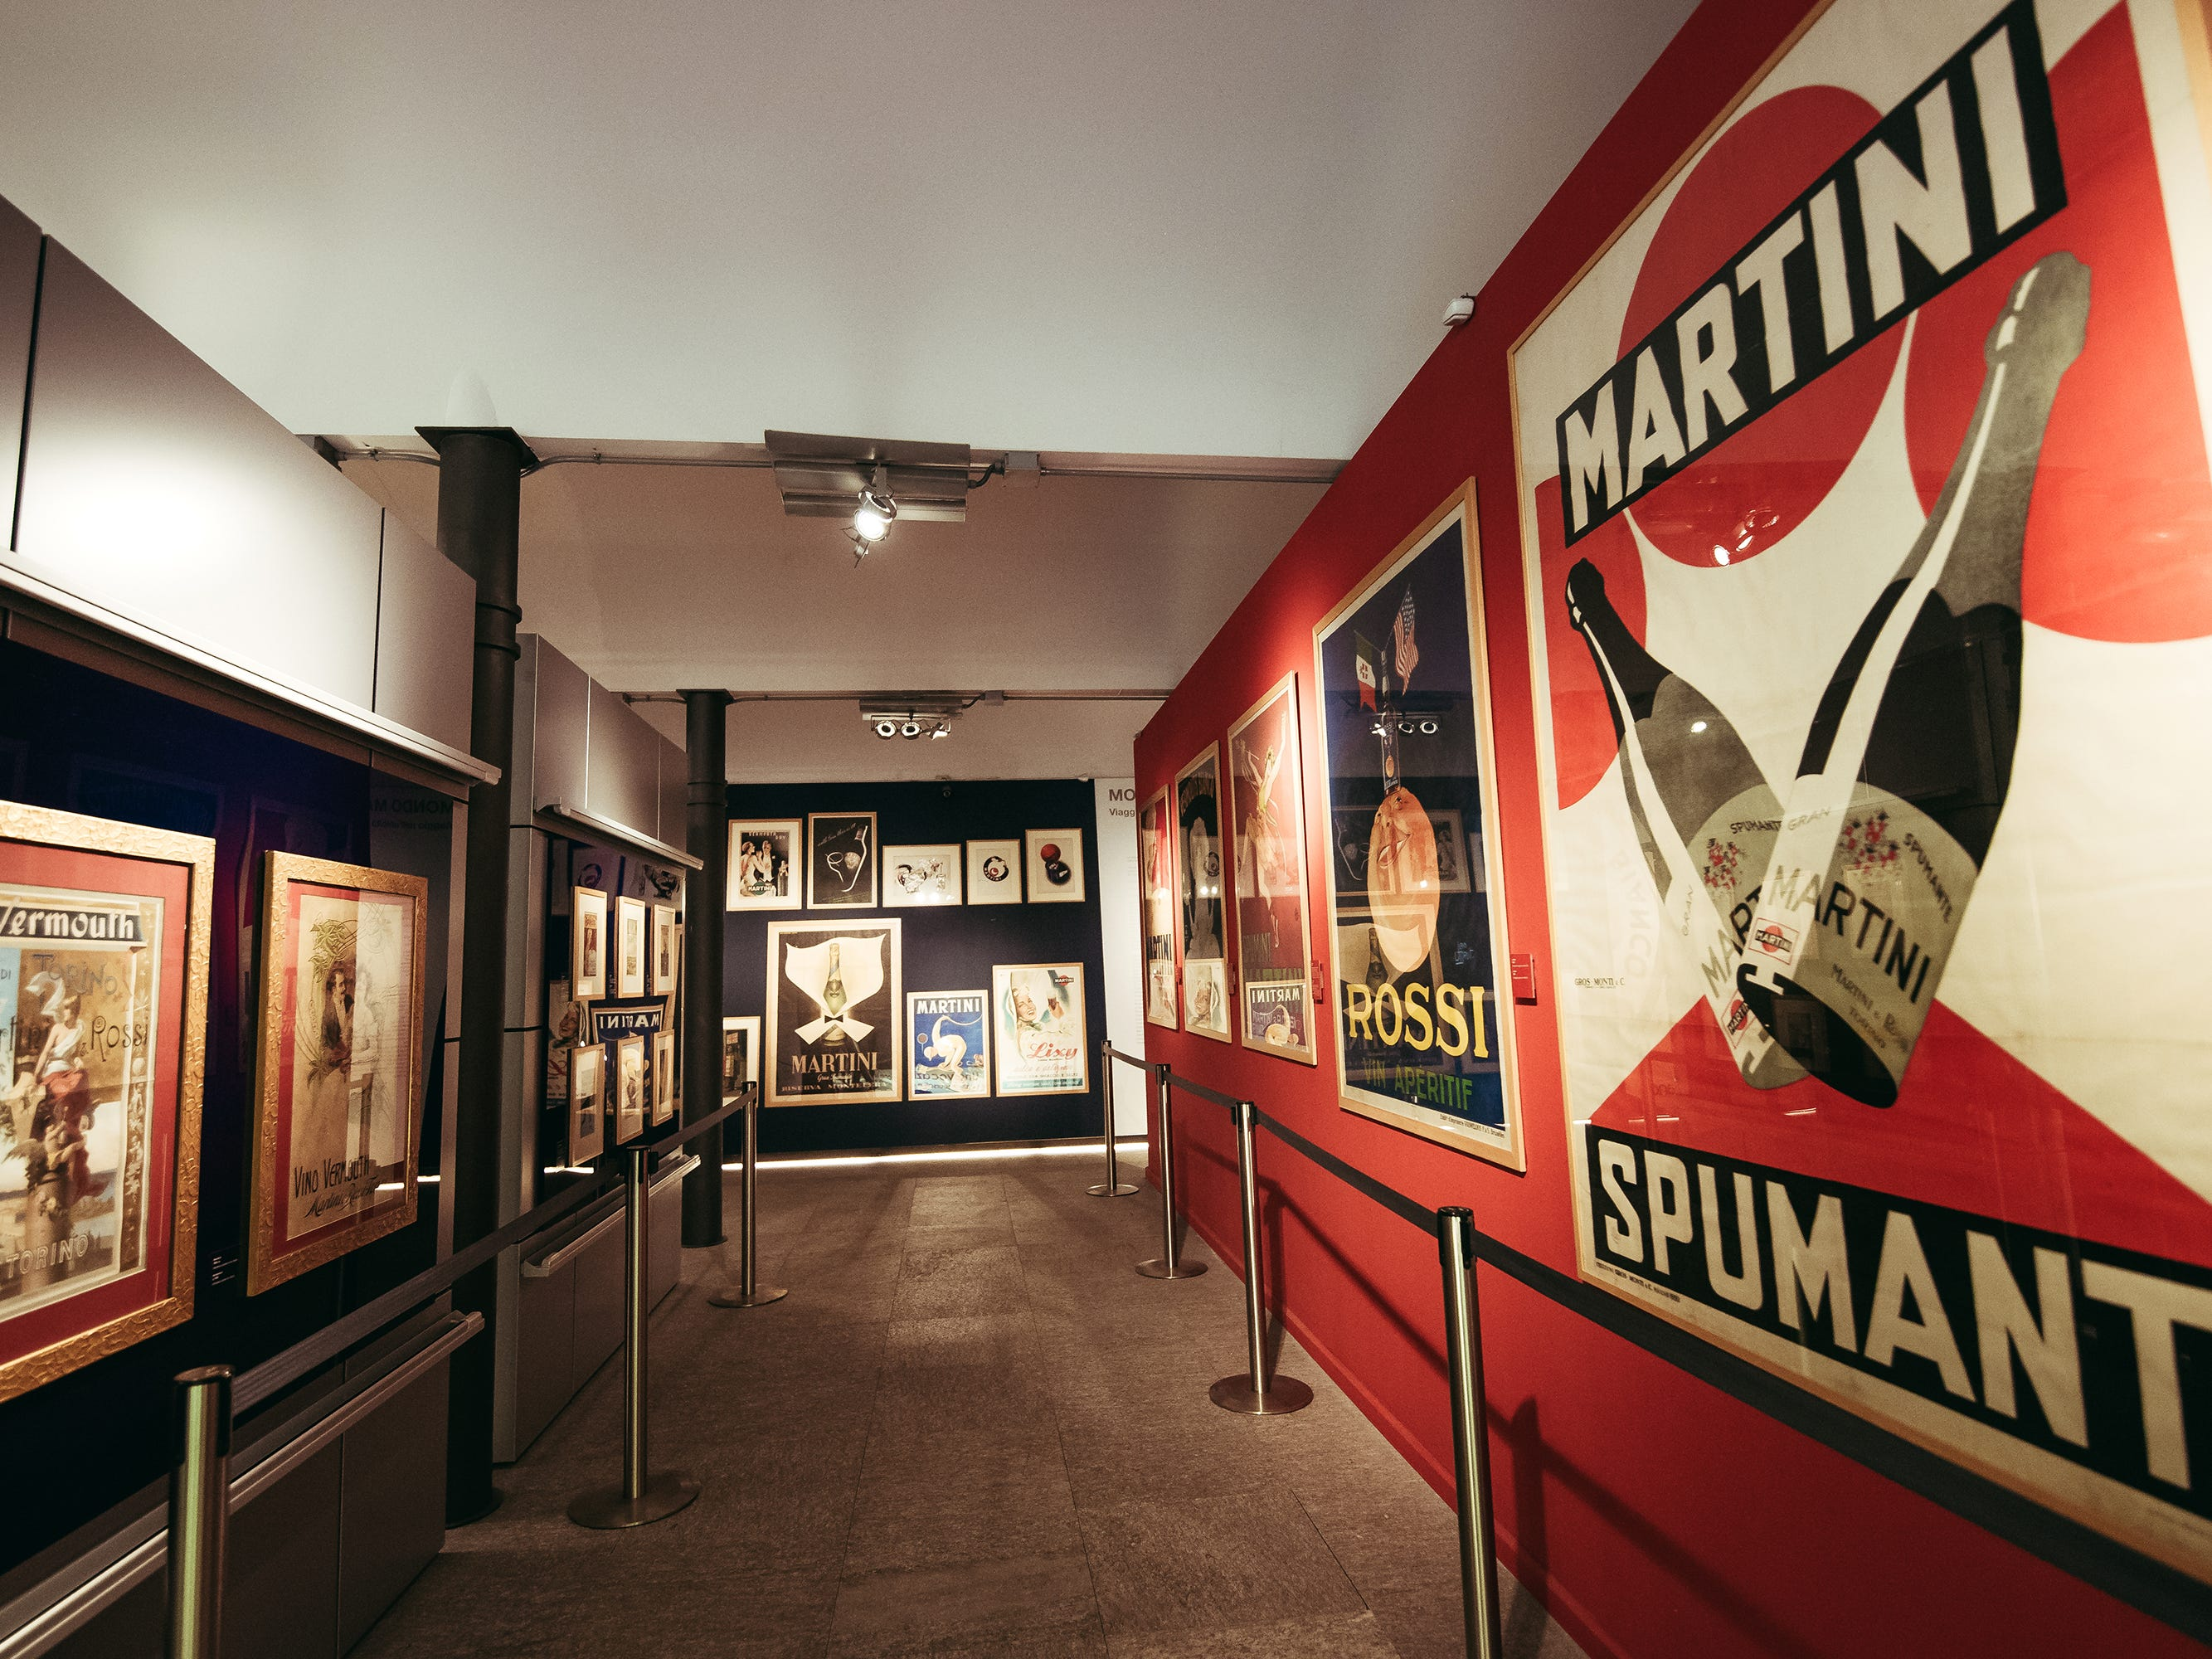 The Mondo Martini gallery includes a collection of Martini advertisements and memorabilia from the past century and a half, dating to the brand's inception in 1863.